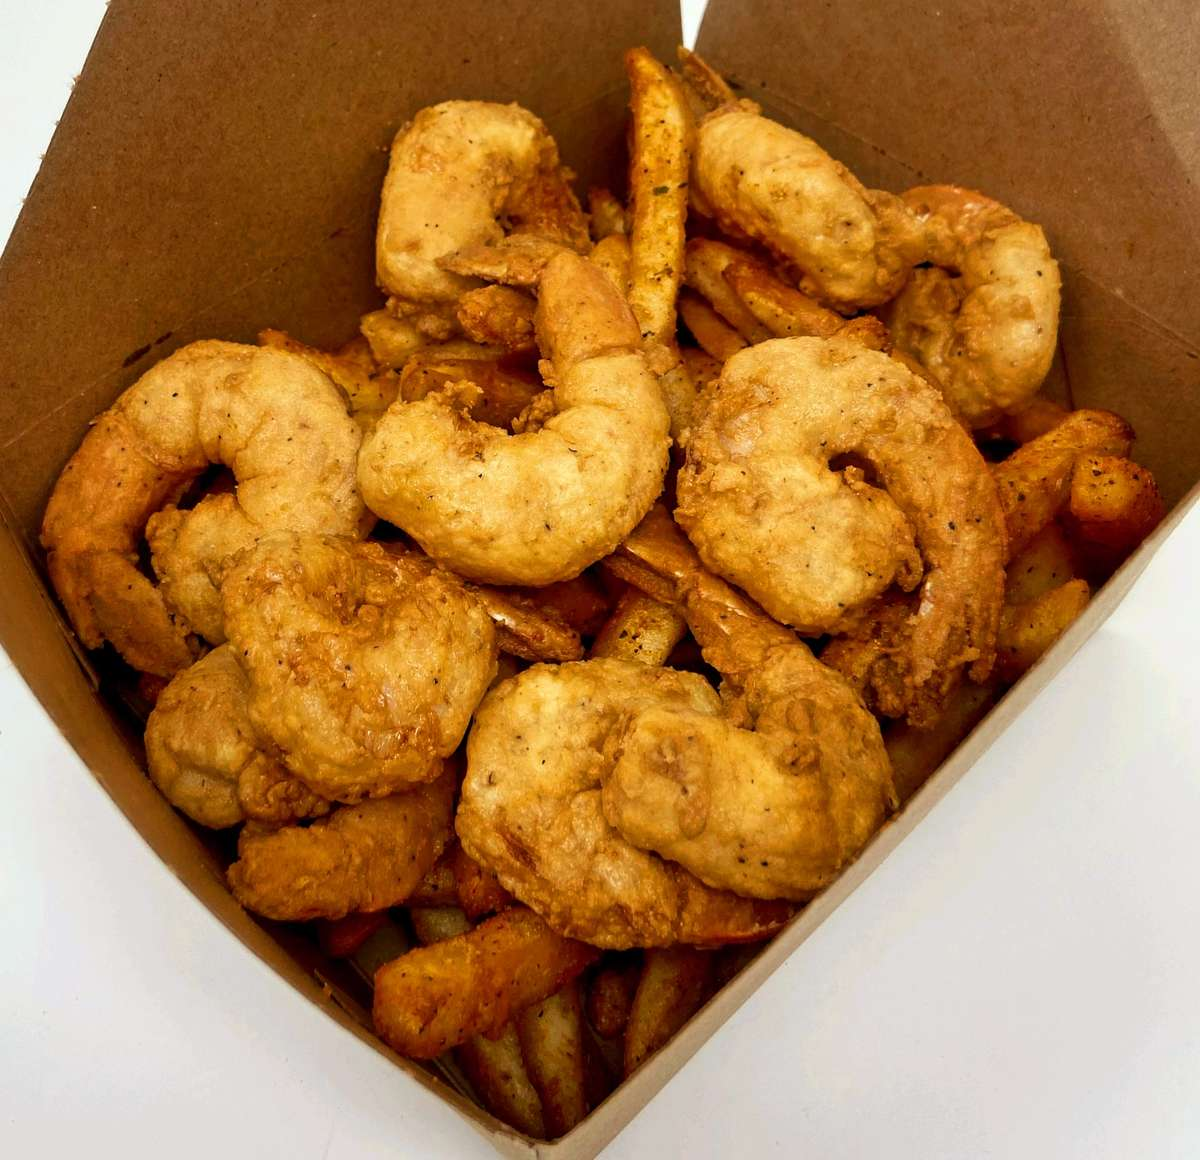 Fried Shrimp Basket (10)